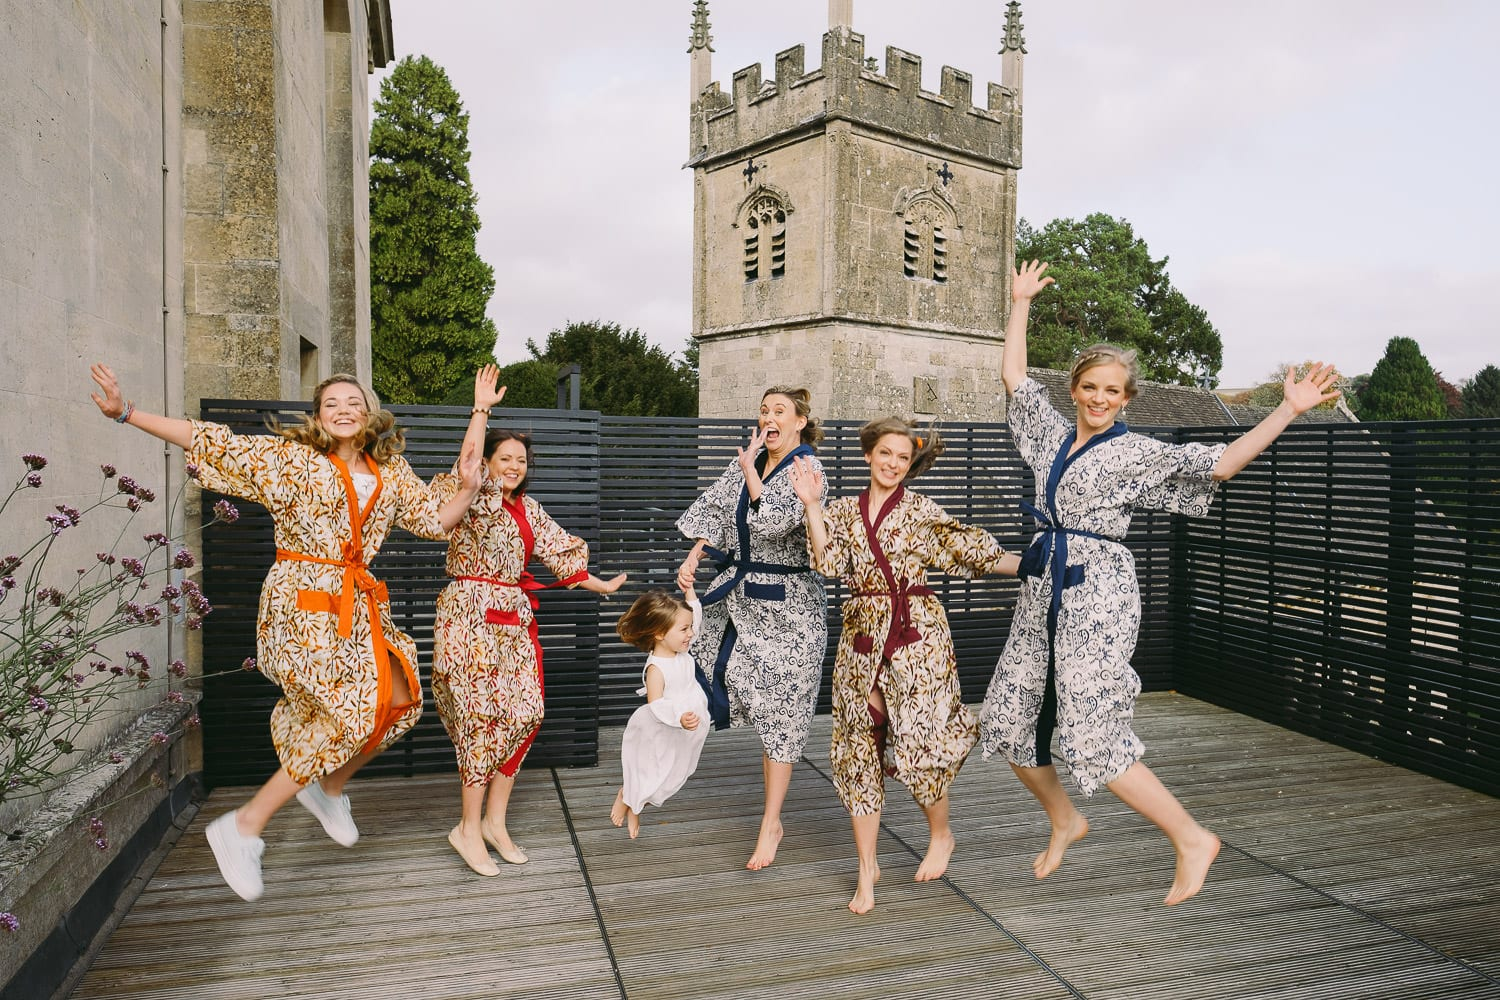 The bridal party jump in the air in front of St Mary's Church., Cowley